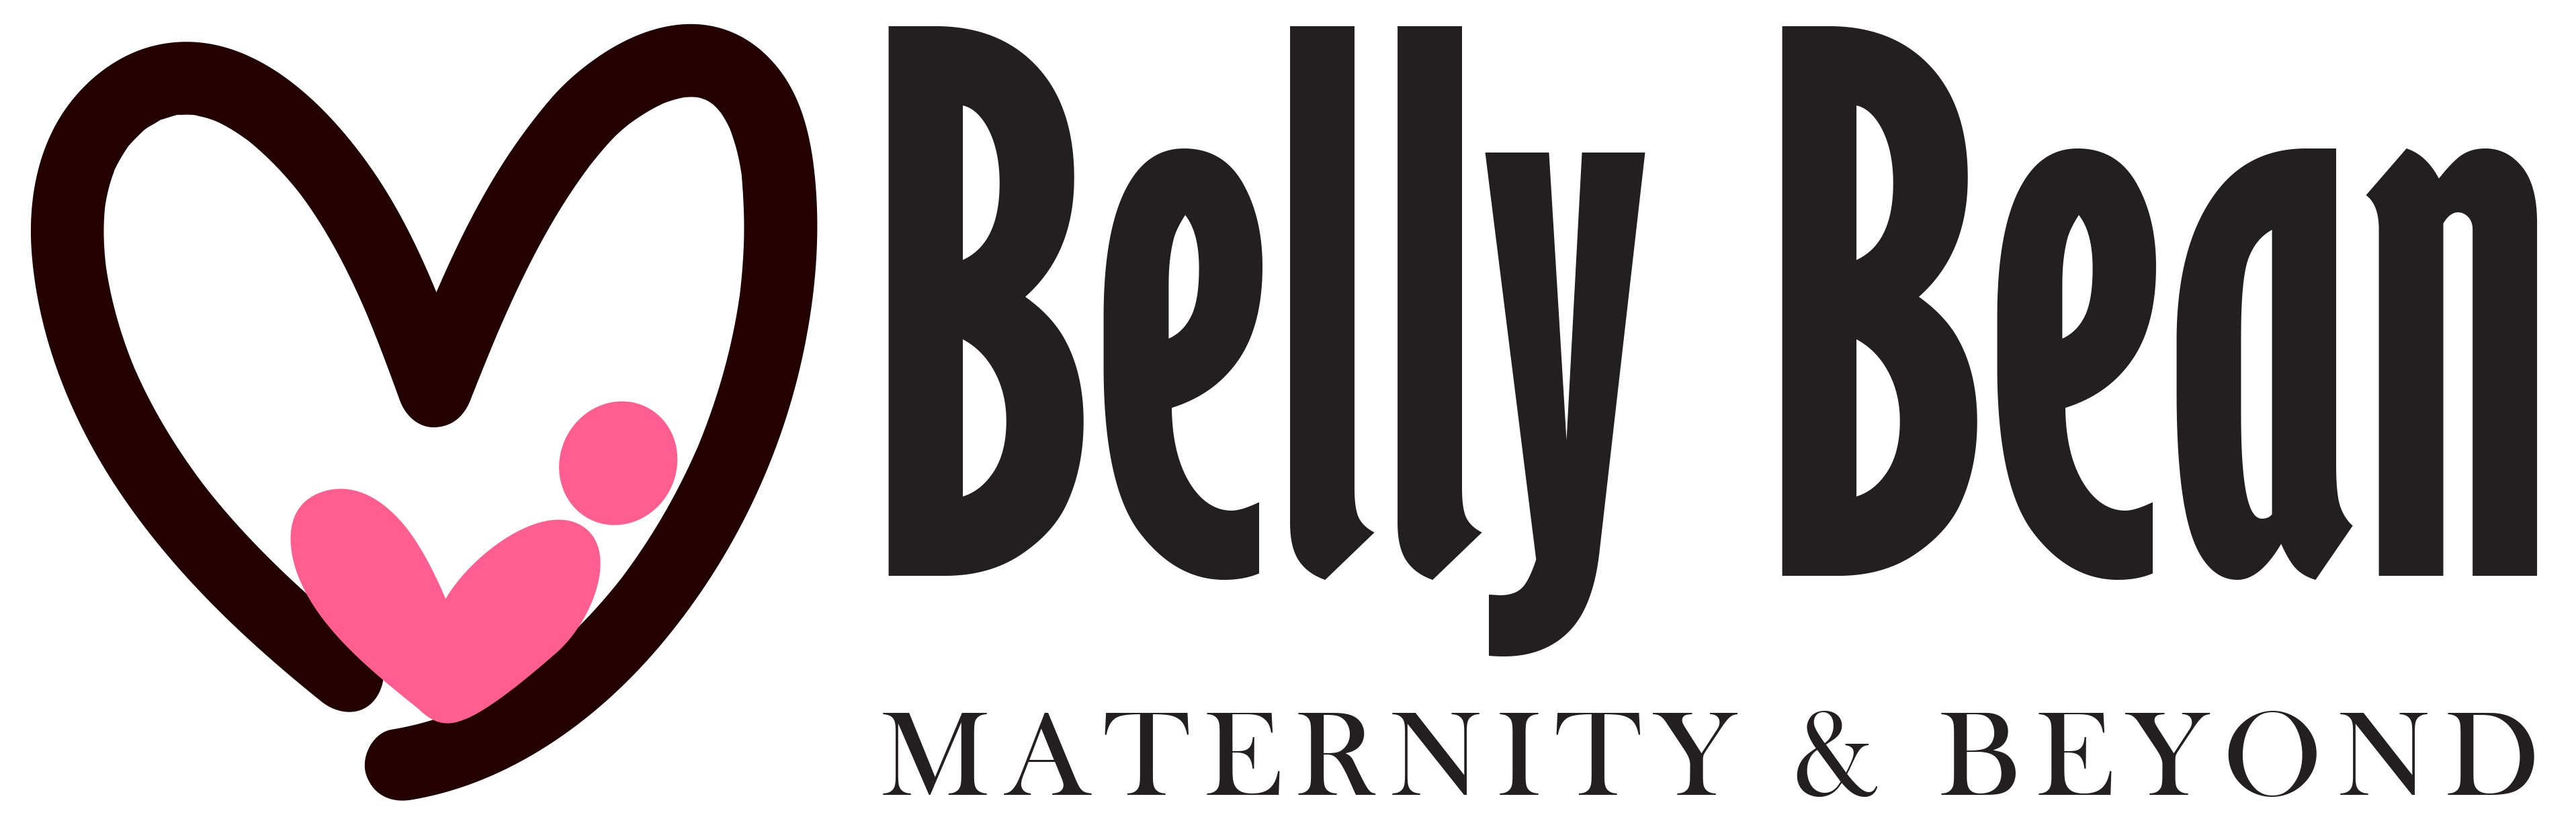 BELLY BEAN MATERNITY & BEYOND